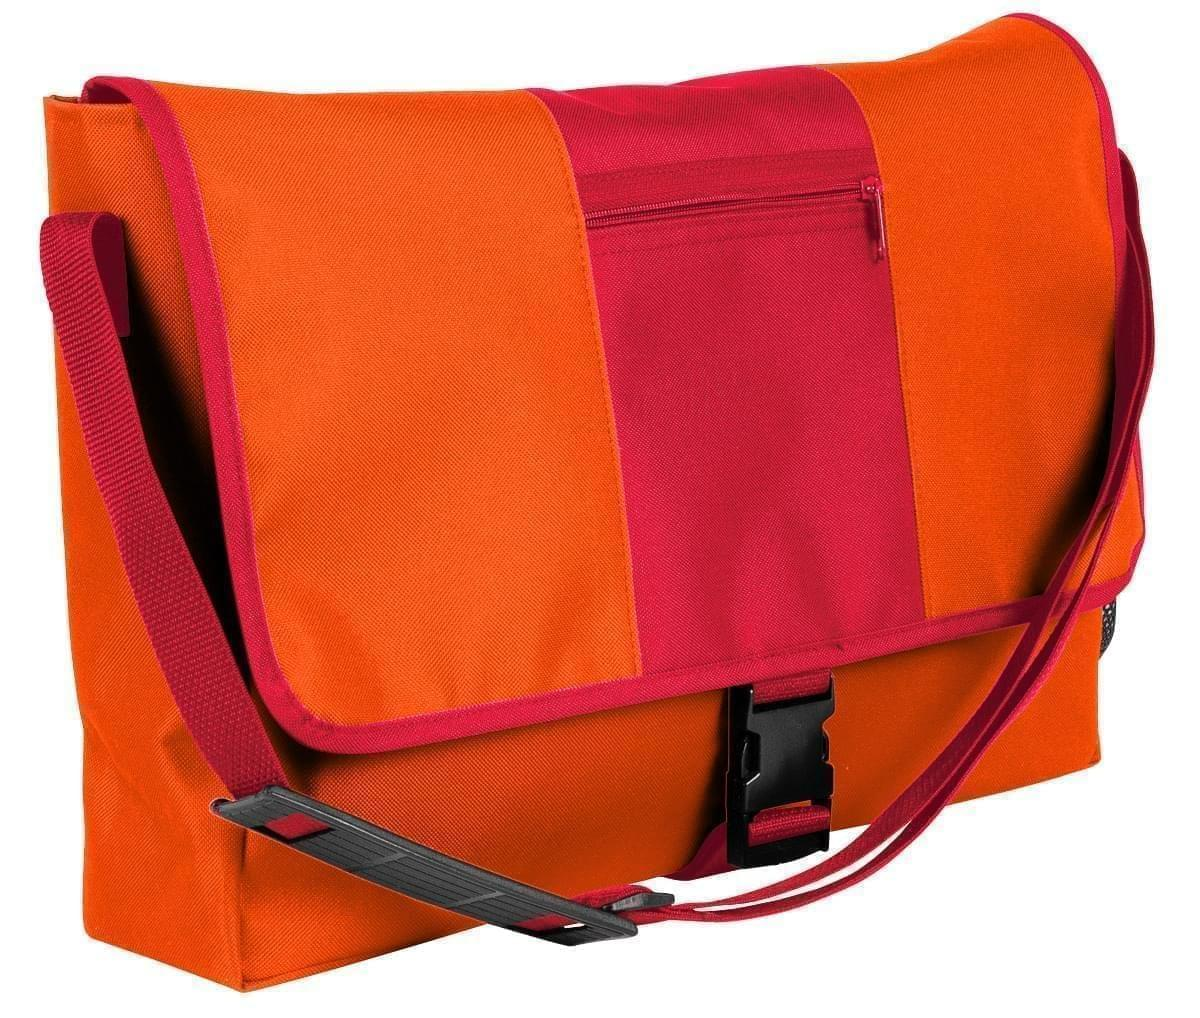 USA Made Nylon Poly Dad Shoulder Bags, Orange-Red, OHEDA19AXL